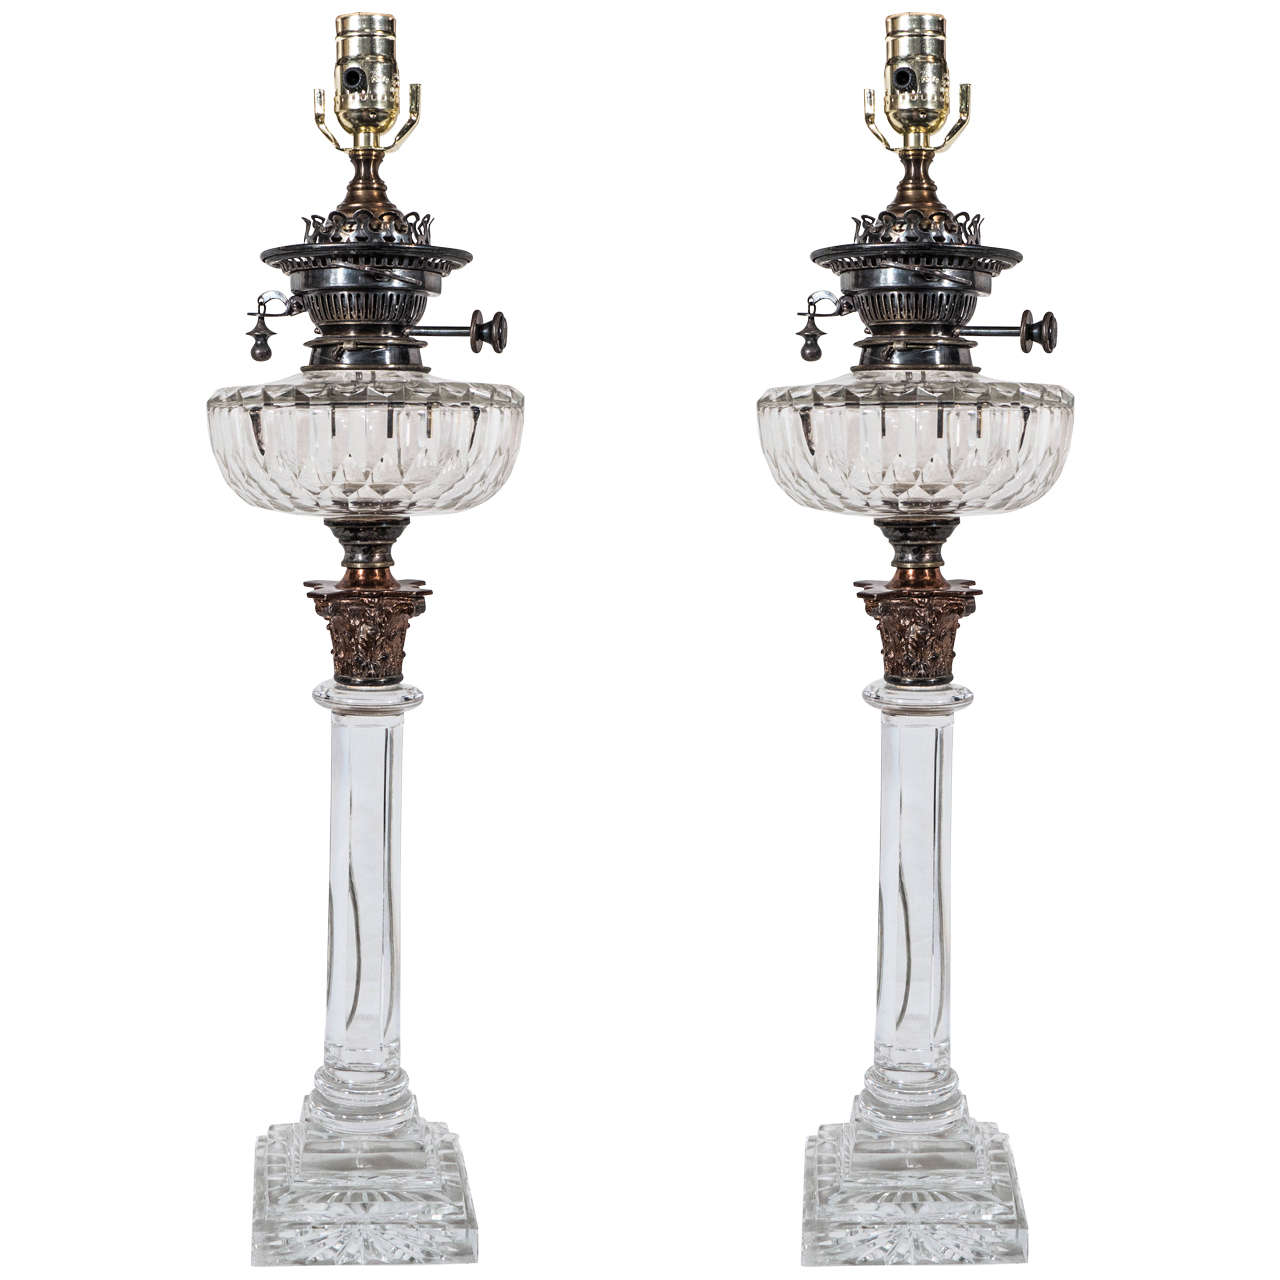 Crystal Chandelier Table Lamps For Sale: Pair Of English Cut-Glass Crystal Oil Lamps For Sale At